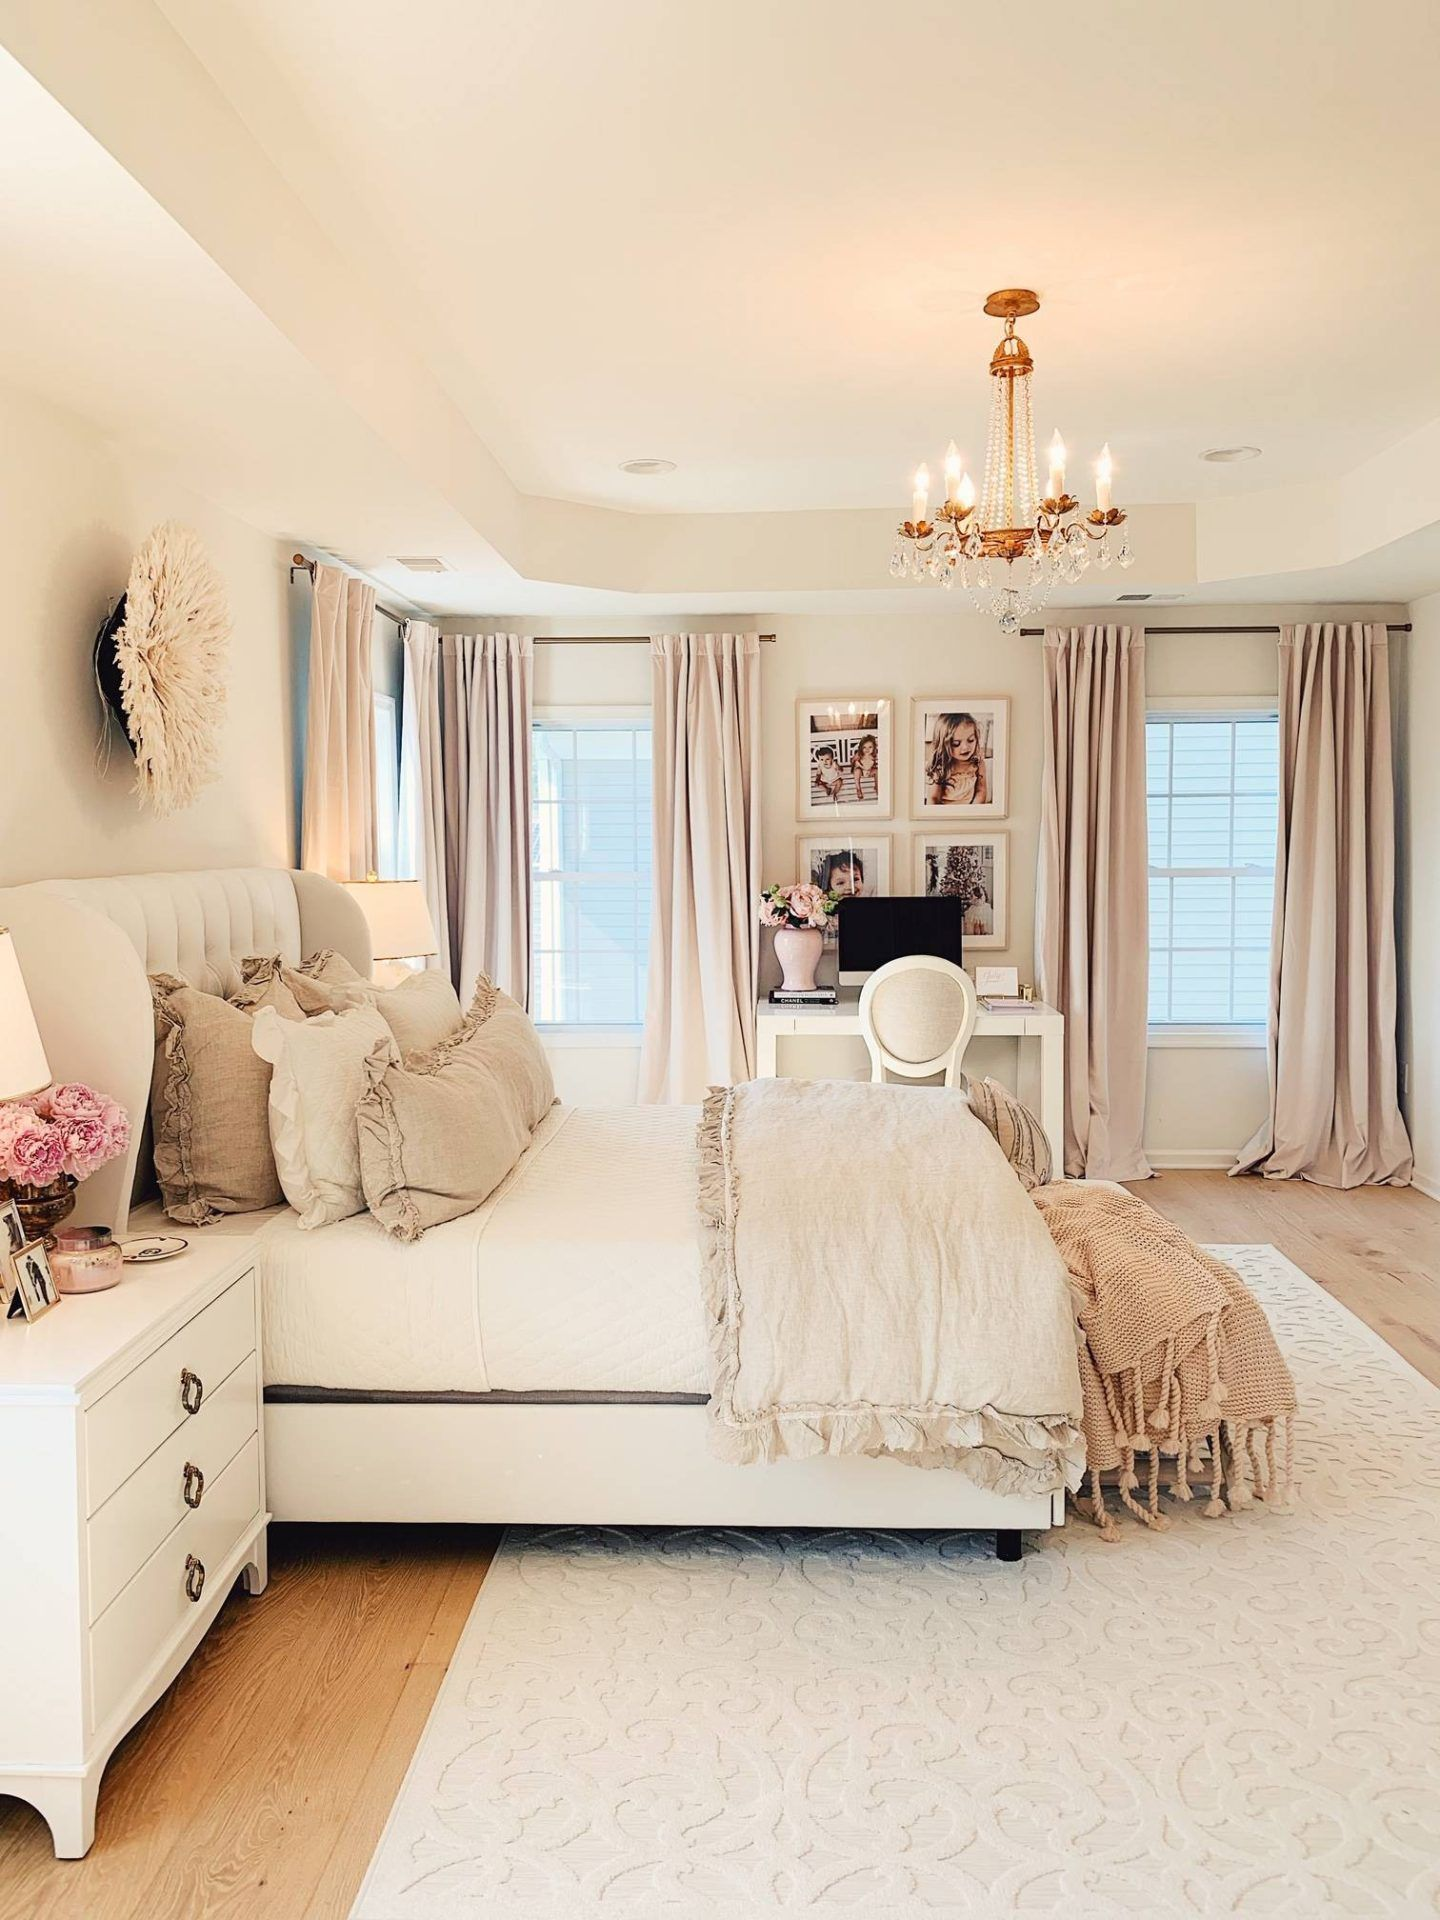 Master Bedroom Decor: a Cozy & Romantic Master Bedroom in ...